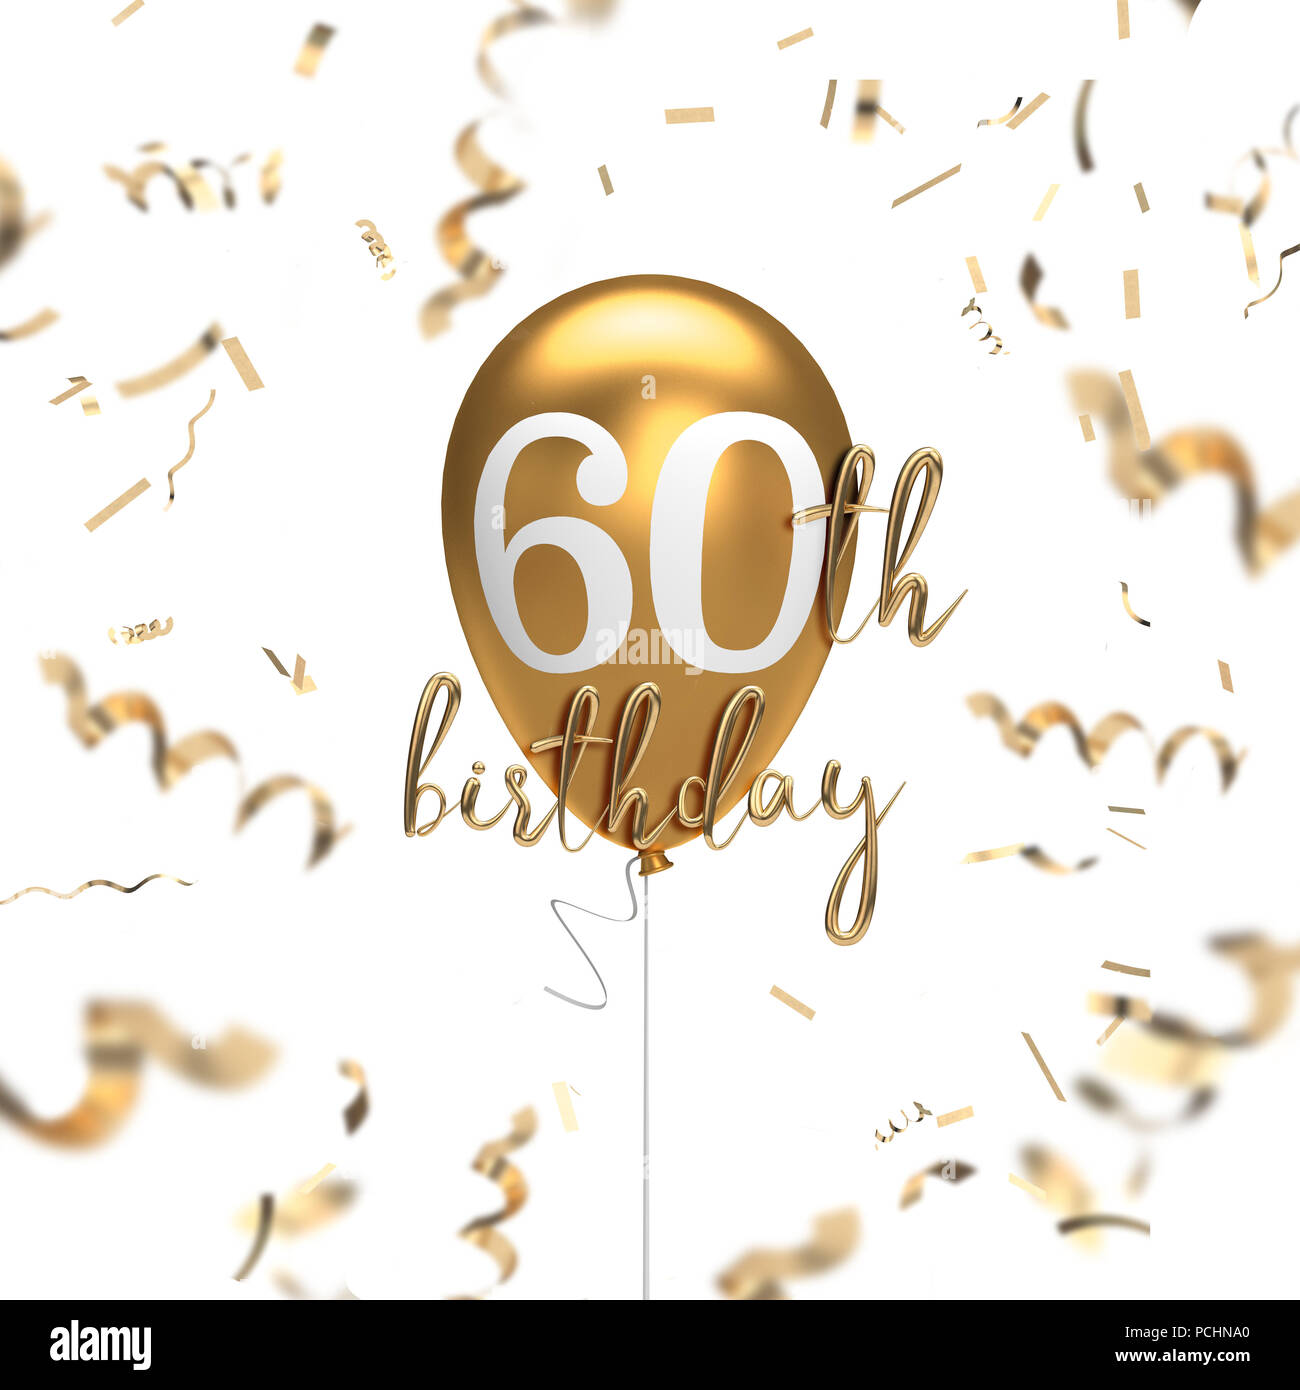 happy 60th birthday gold balloon greeting background 3d rendering